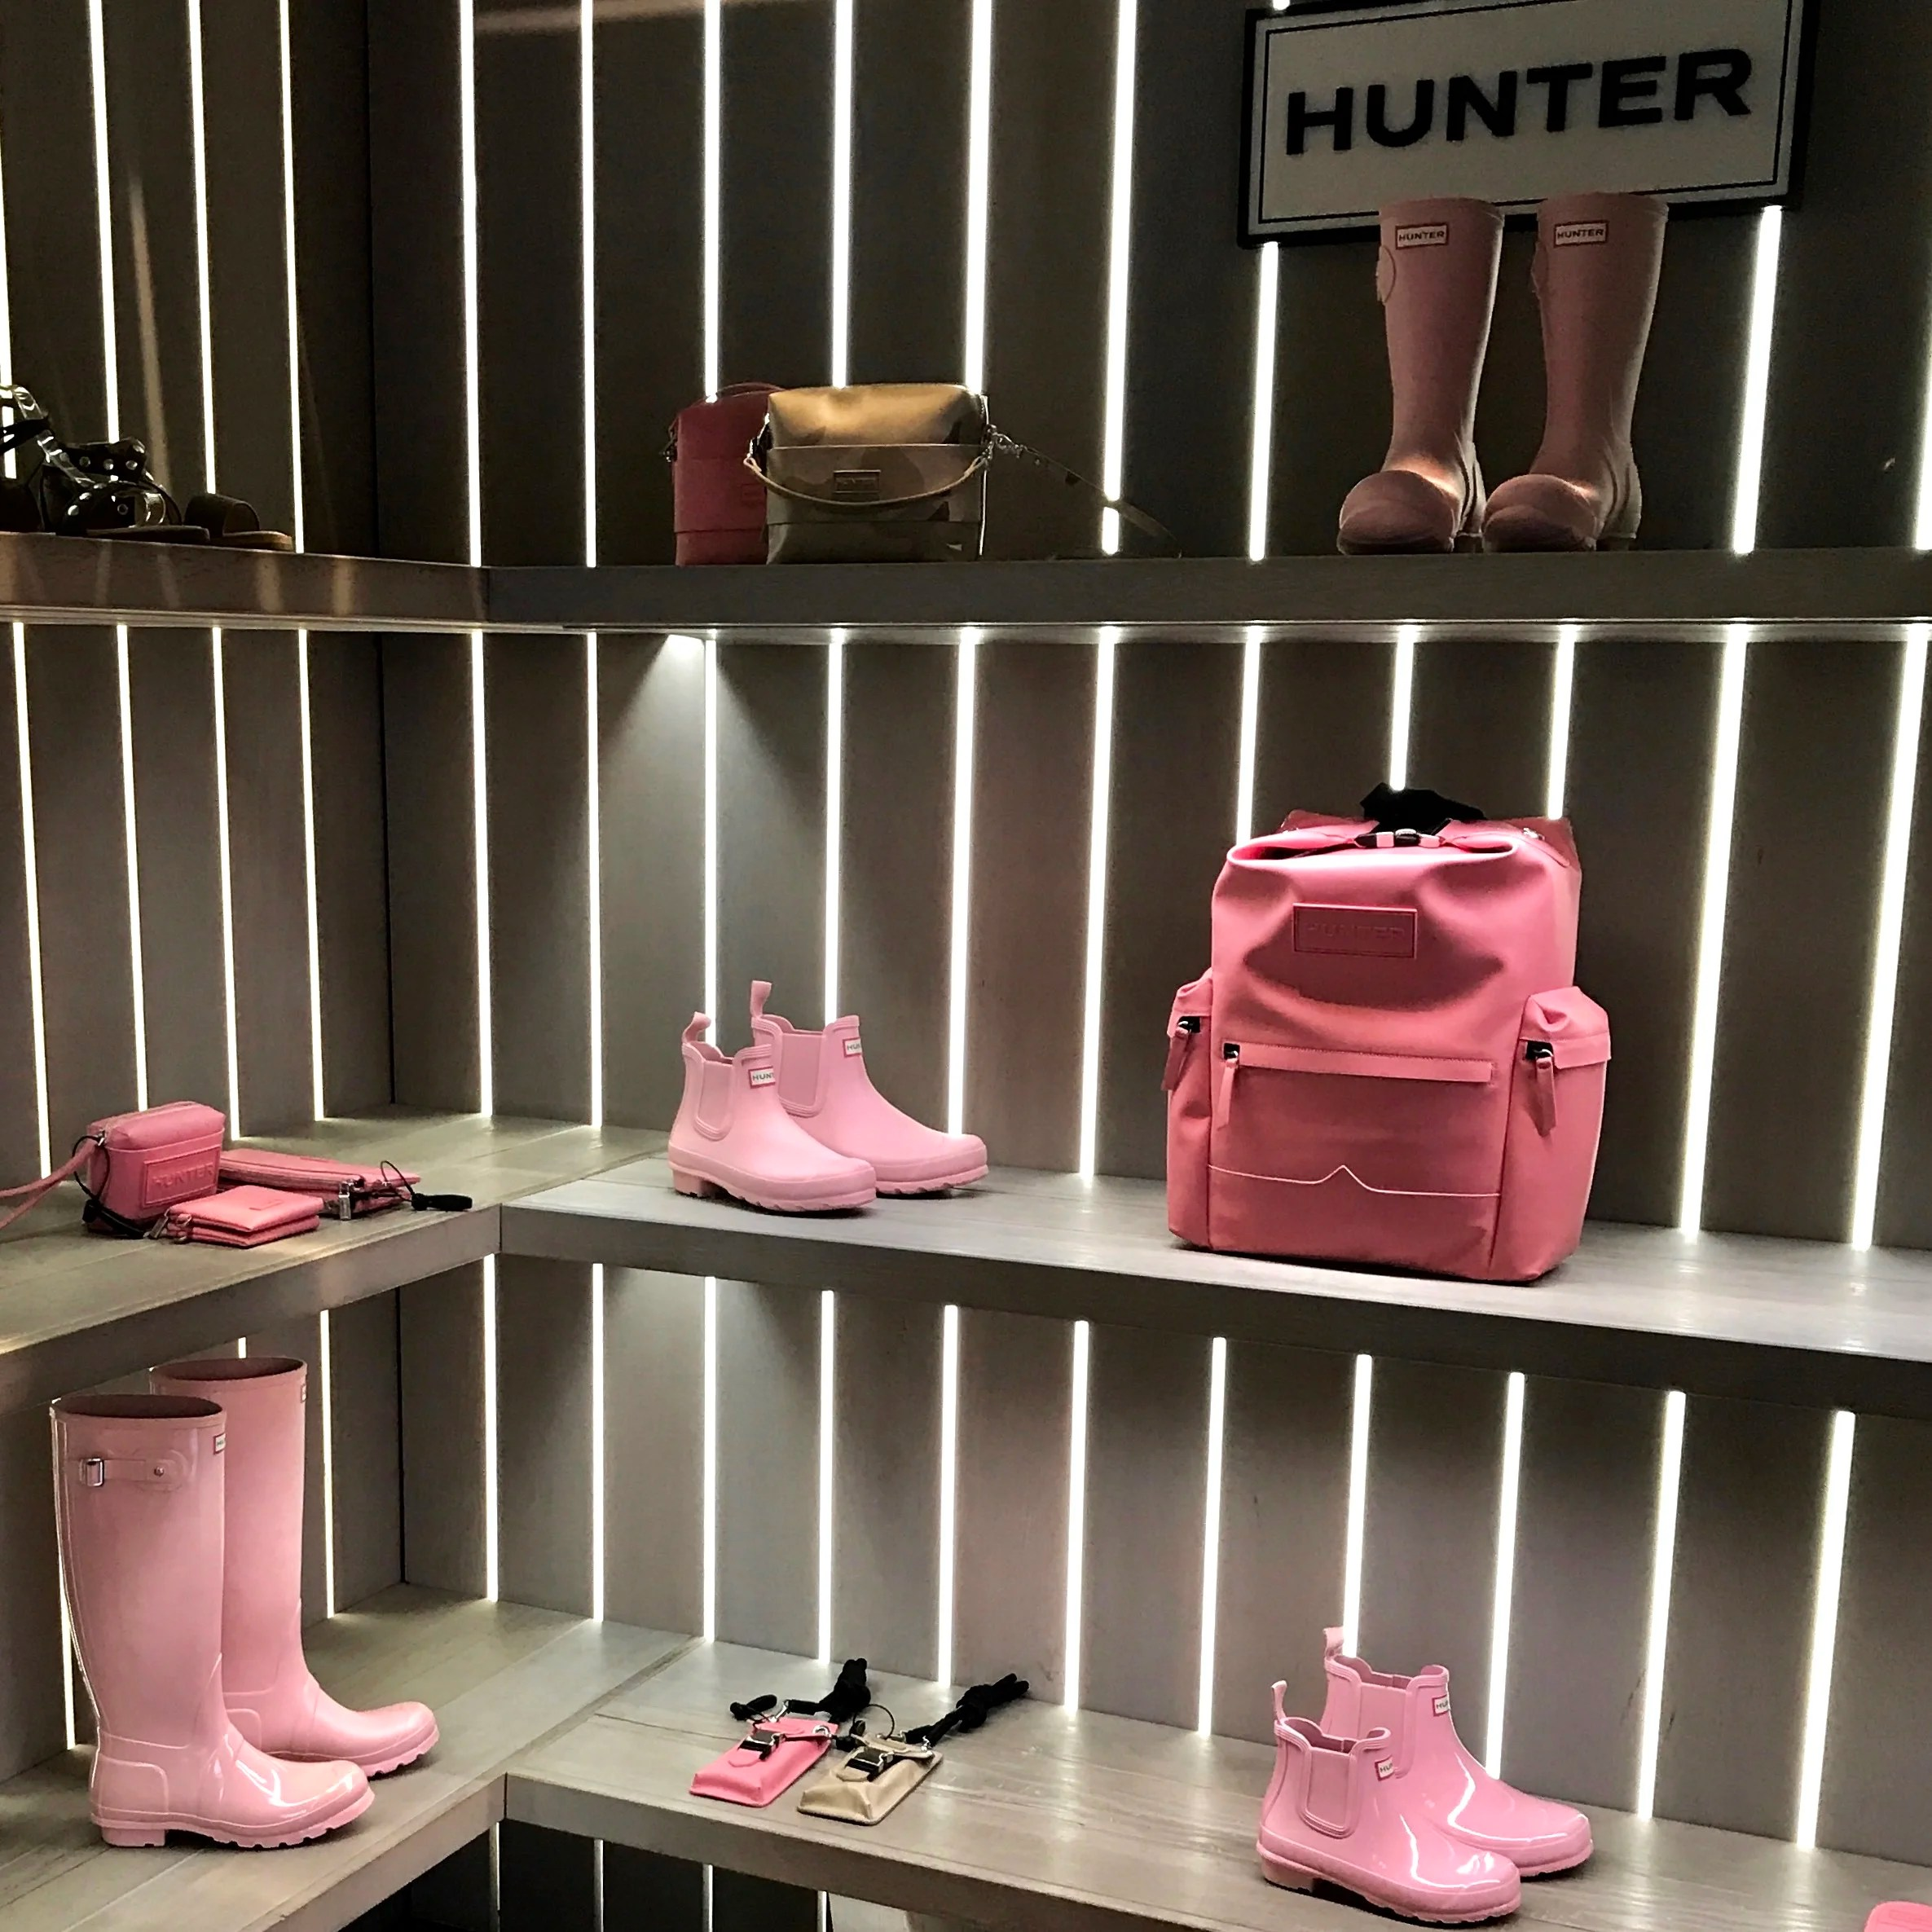 Hunter Boots and Accessories